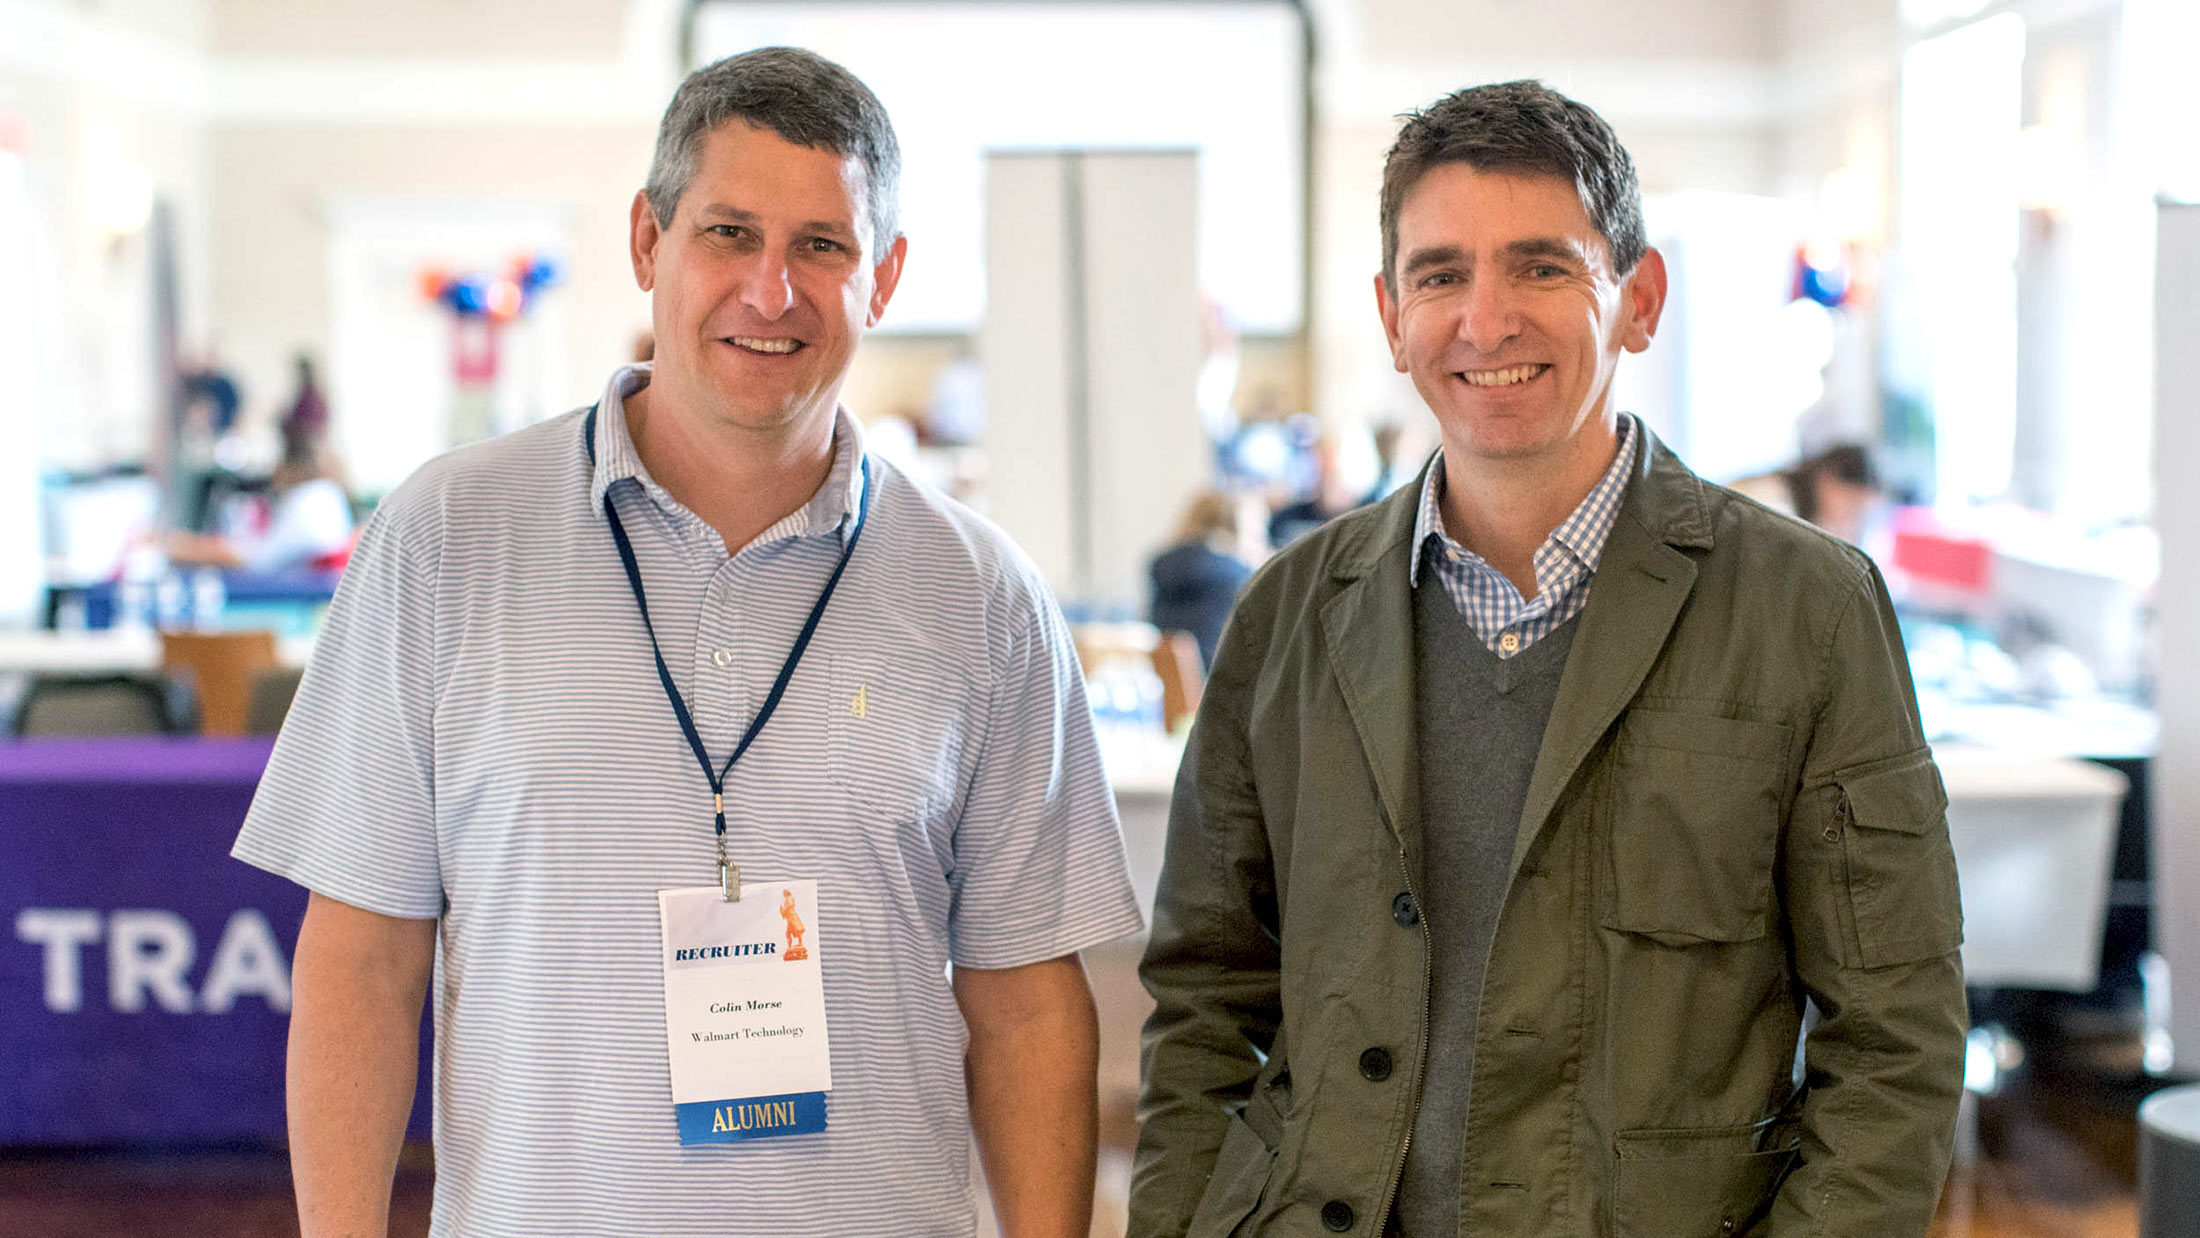 Morse, left, and O'Riordan are both UVA alumni and now work for Walmart Technology in Reston.